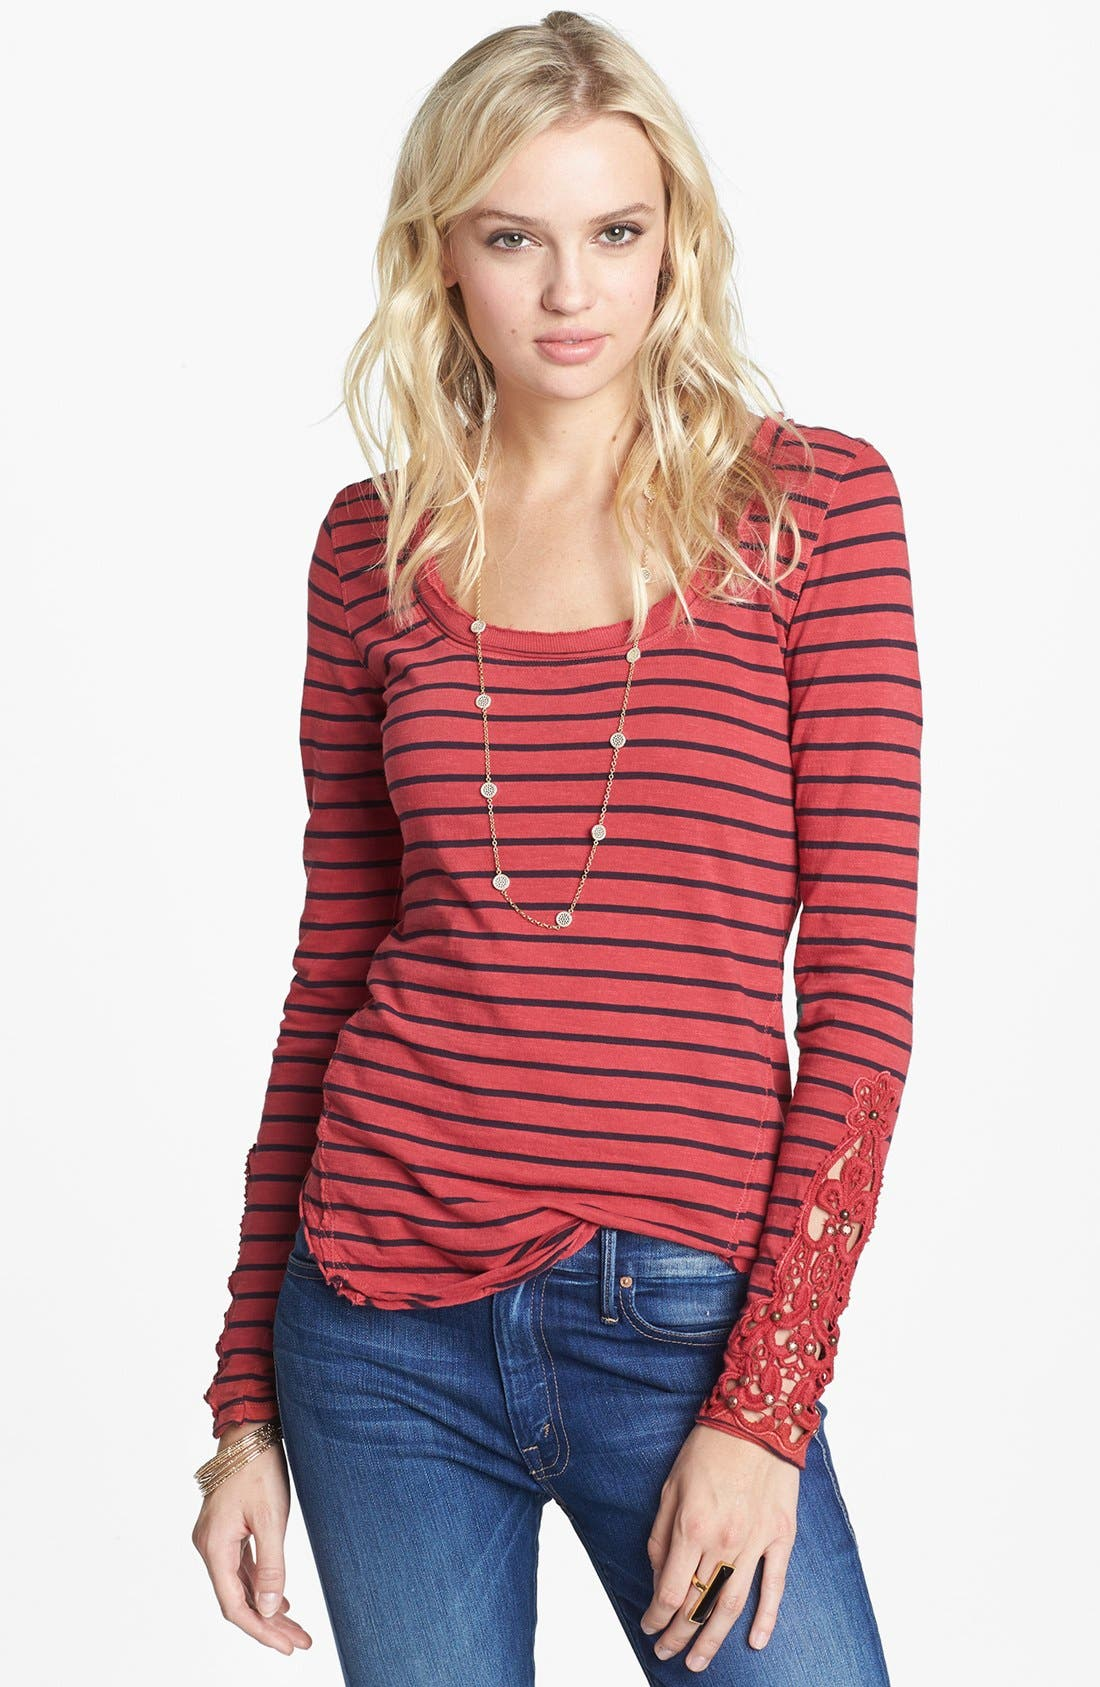 Alternate Image 1 Selected - Free People 'Hard Candy' Embellished Sleeve Tee